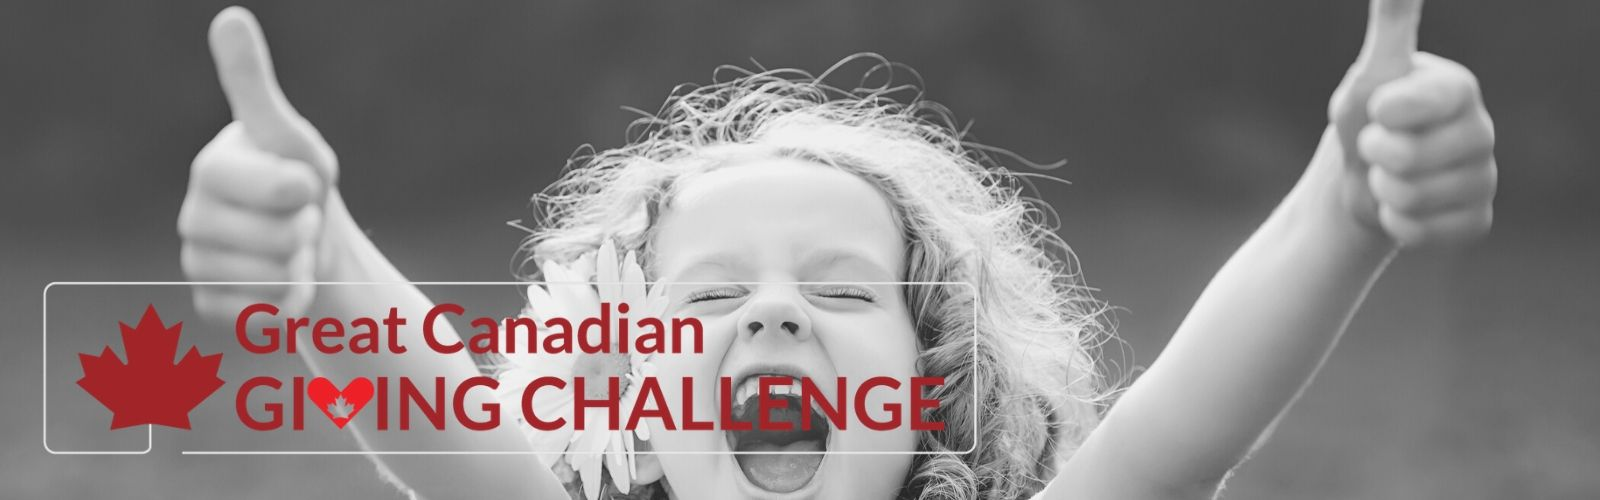 <div id=mobile_slideshowbox><div id=slideshow_title>Great Canadian Giving Challenge</div> <br>Every $1 donated IN JUNE is an automatic entry for LFS to win $20,000. (minimum $3 donation required)<br><center><a href='https://www.canadahelps.org/en/gcgc/6592'><div id=slideshow_cta>Donate Now</div></a></center></div>